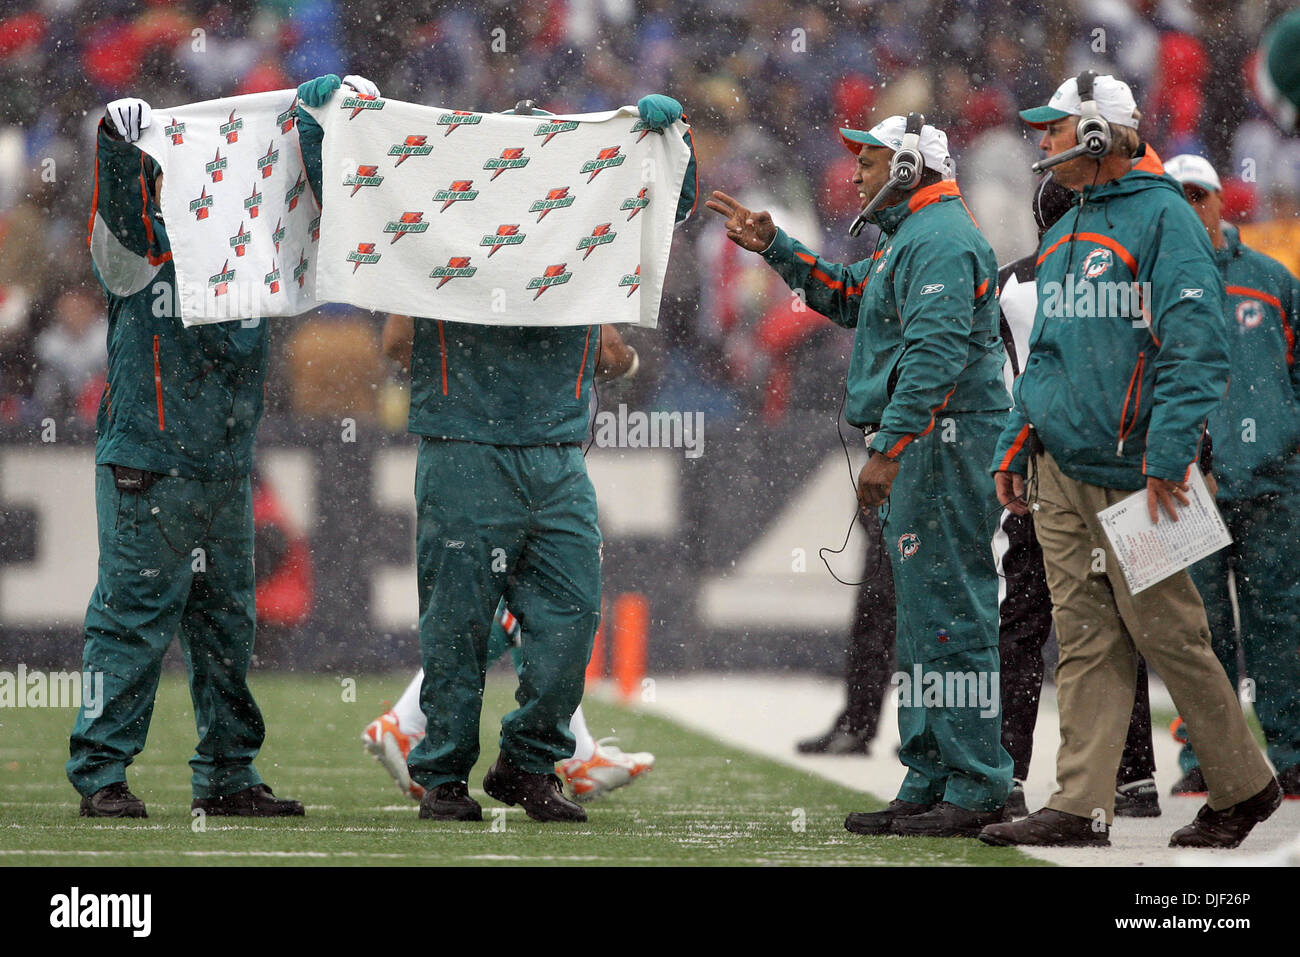 Dec 09, 2007 - Buffalo, New York, USA - Dolphins assistants hold up towels as defensive signals are called from Stock Photo